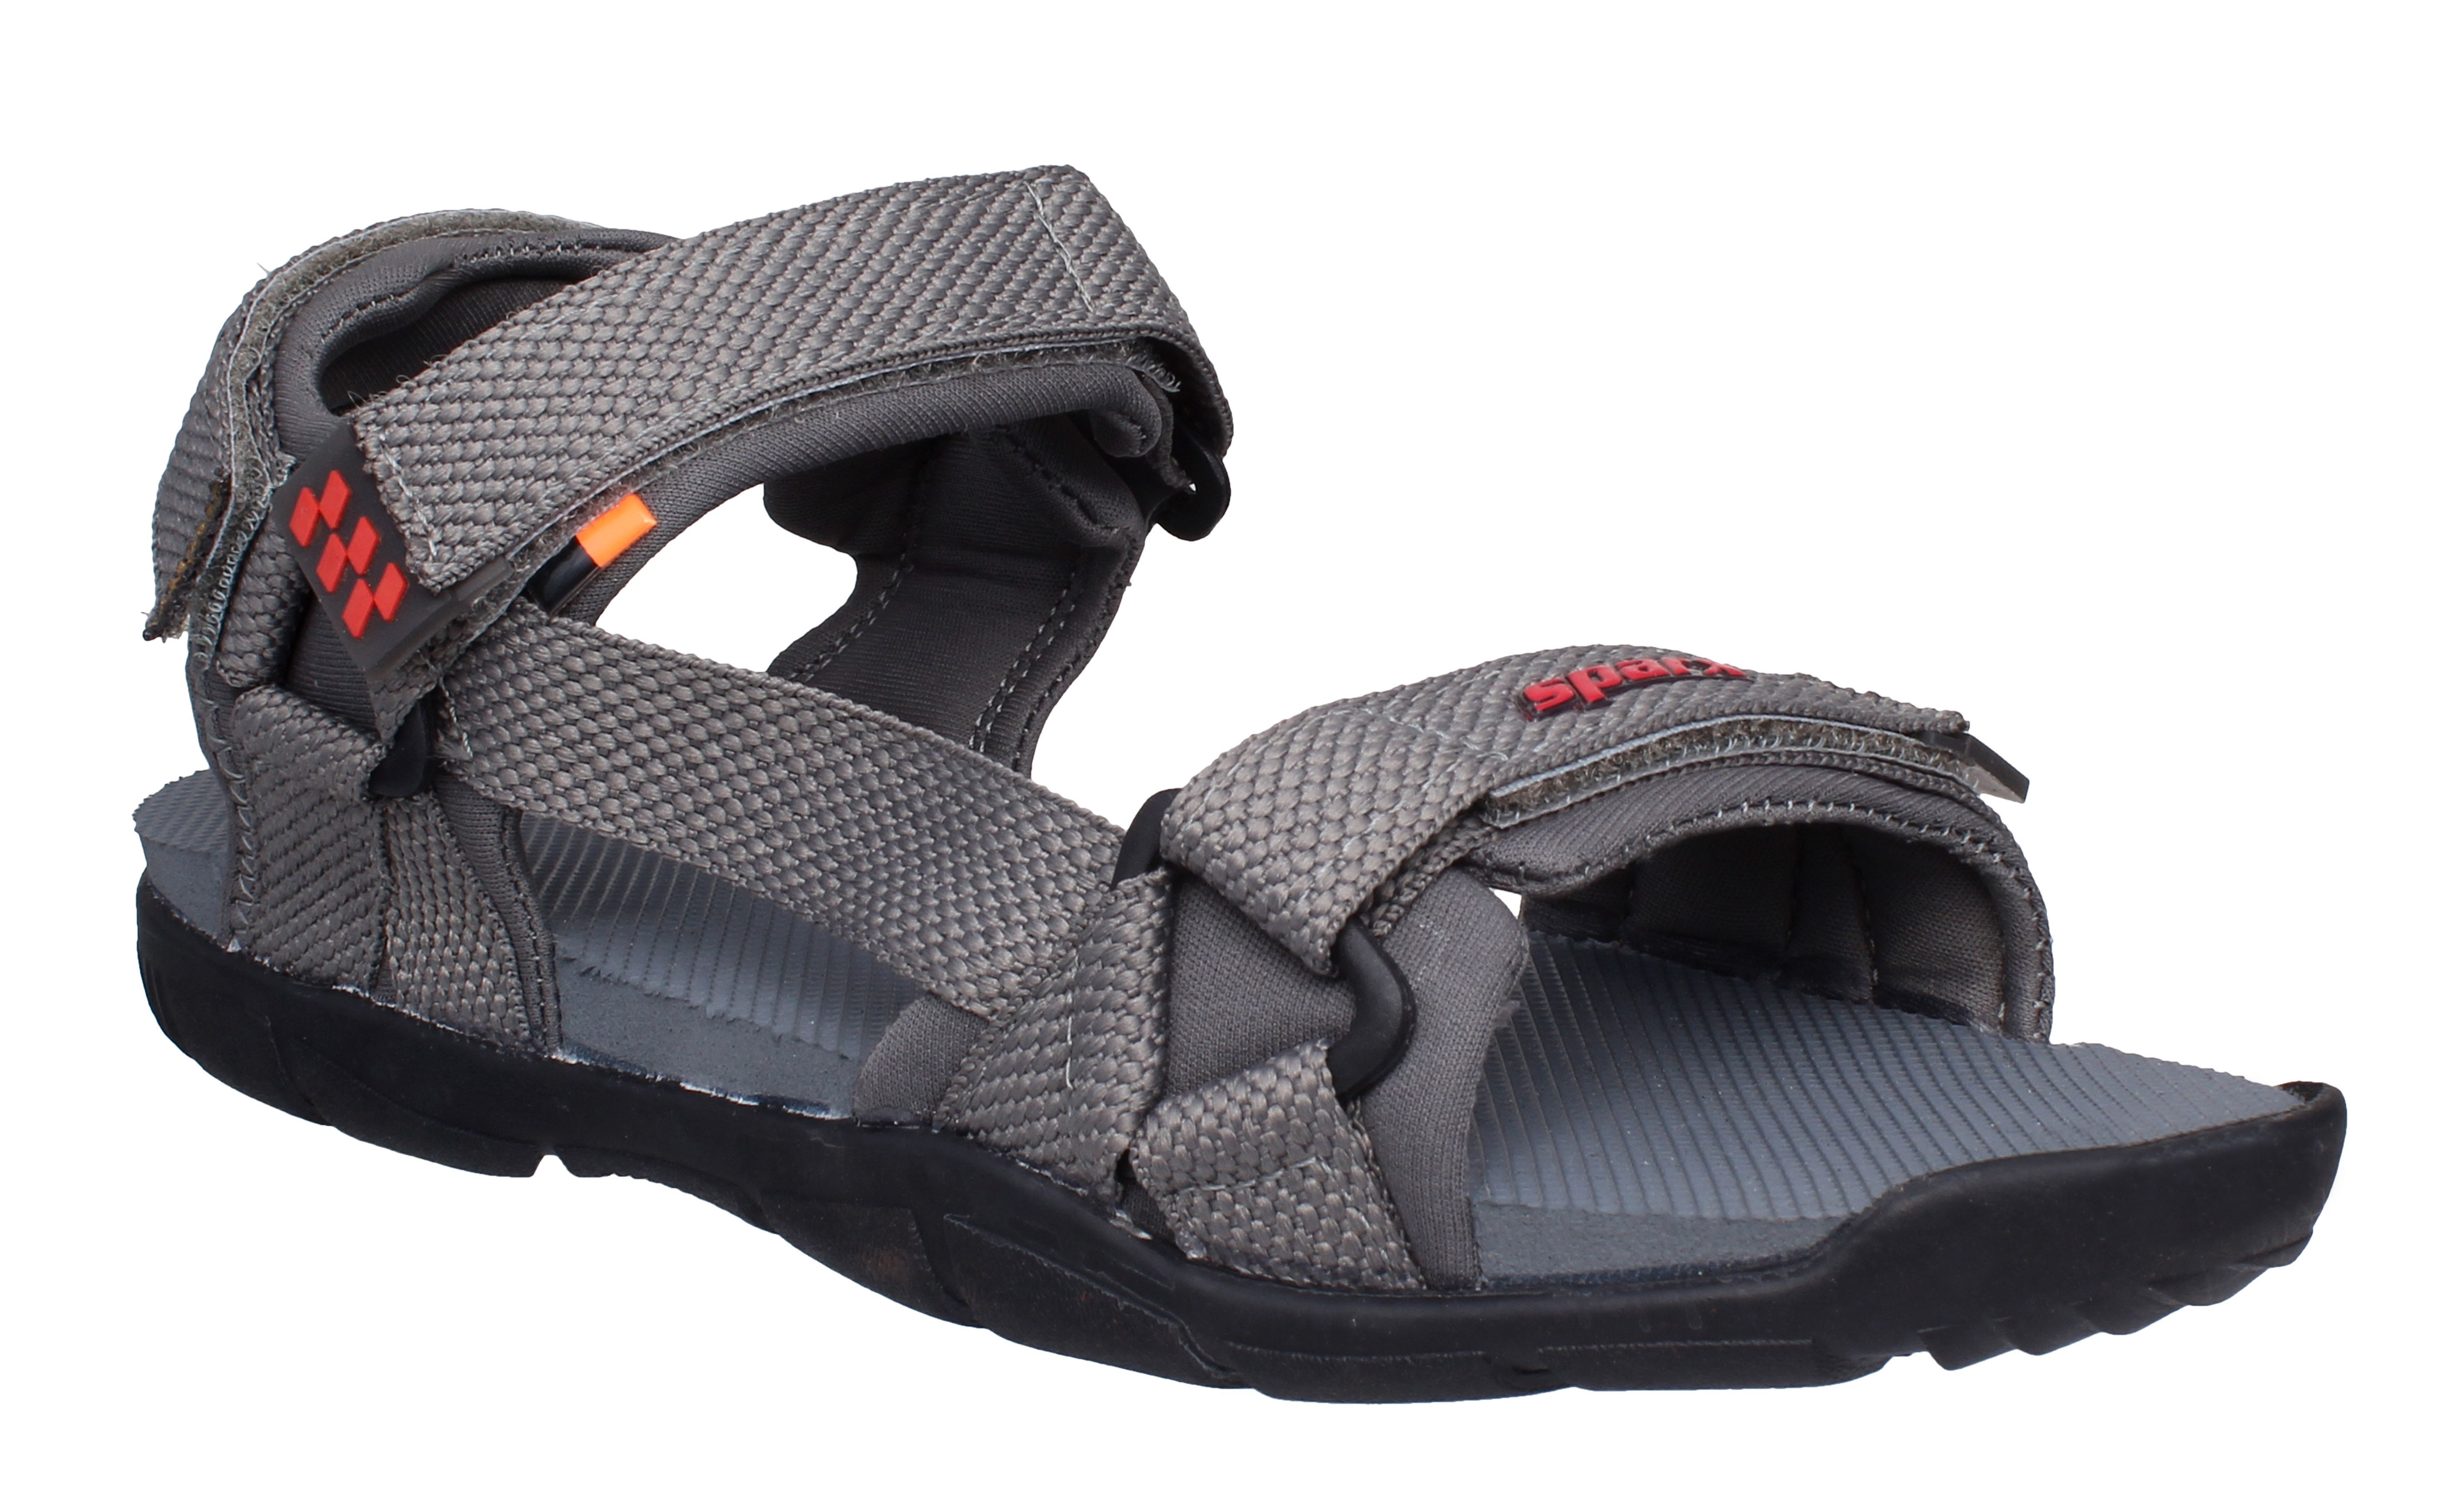 2945ad38aad39 Sparx SS-474 Gray Floater Sandals - Buy Sparx SS-474 Gray Floater Sandals  Online at Best Prices in India on Snapdeal